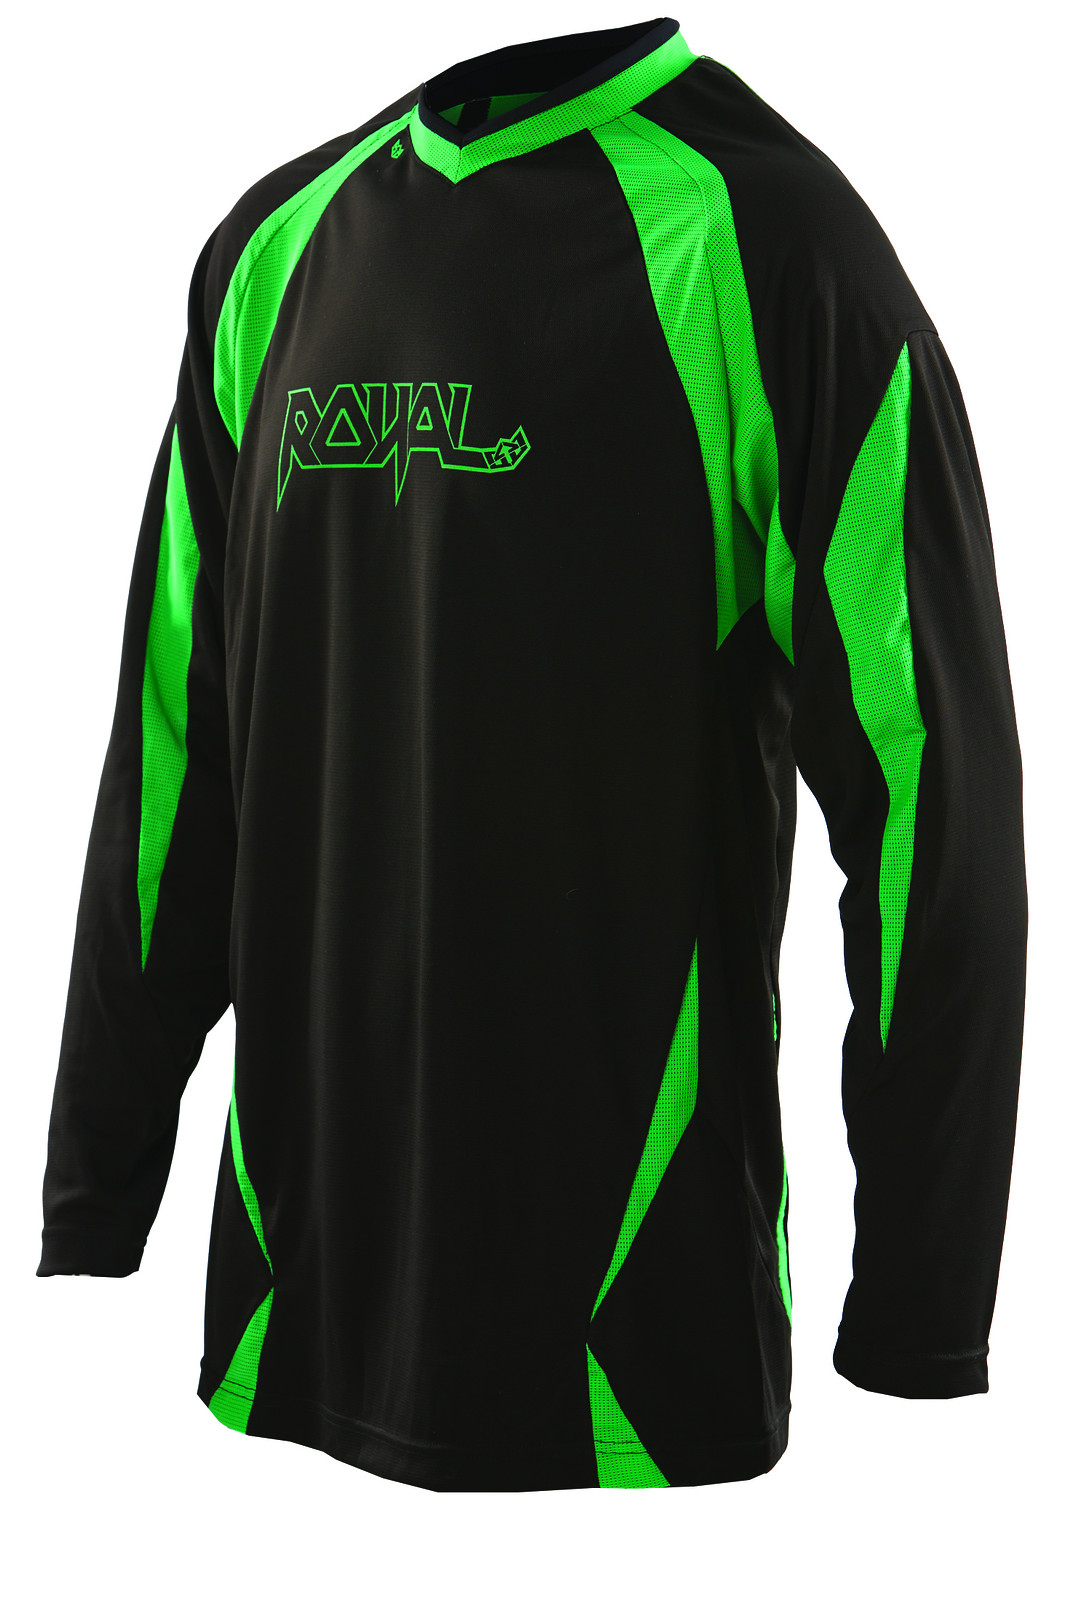 Royal 2014 Turbulence LS Jersey  LS turbulannce black green f